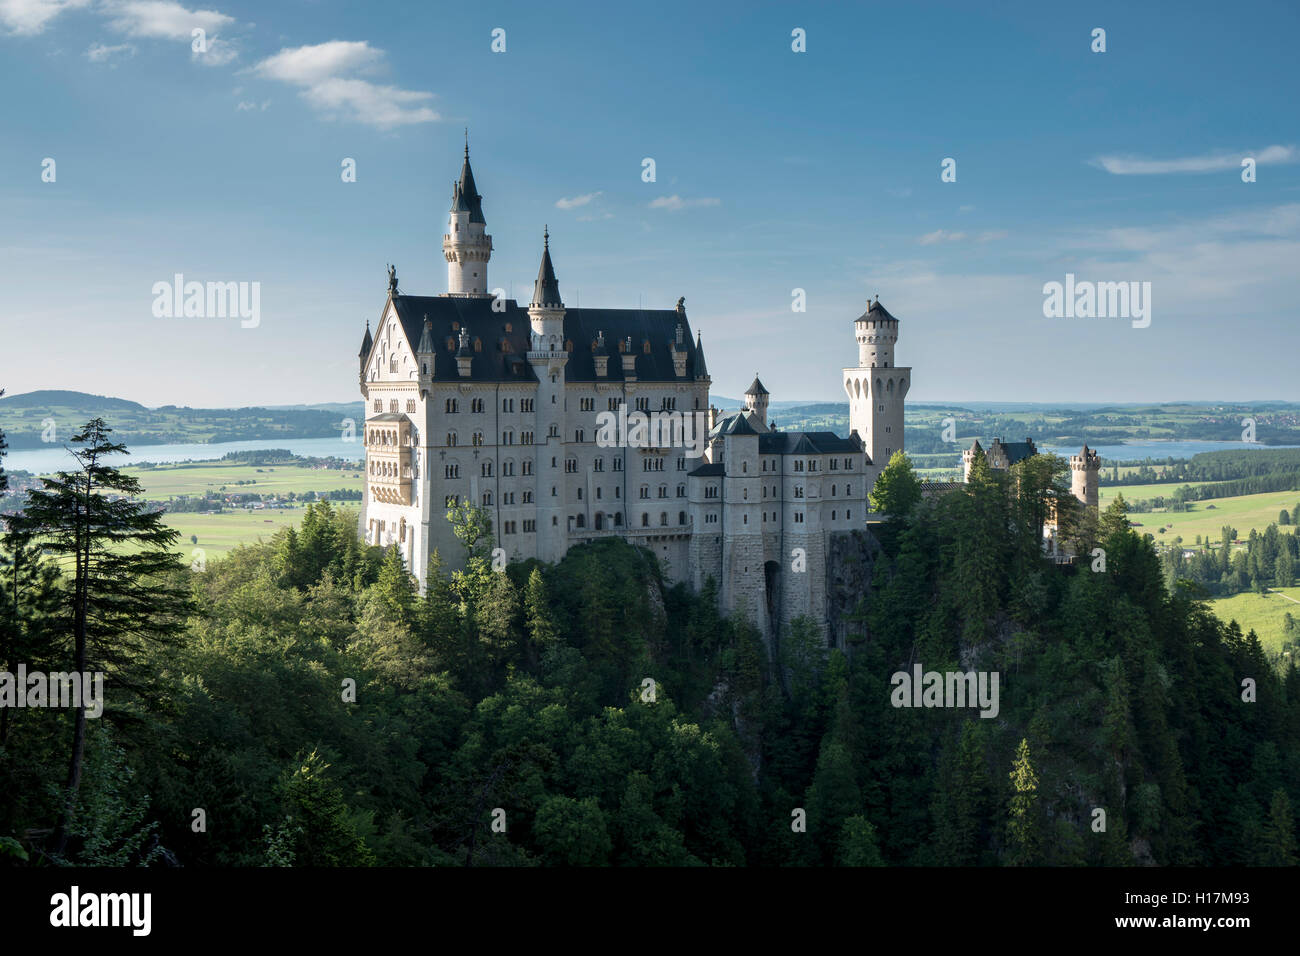 Castle Neuschwanstein, Schwangau, Bavaria, Germany - Stock Image